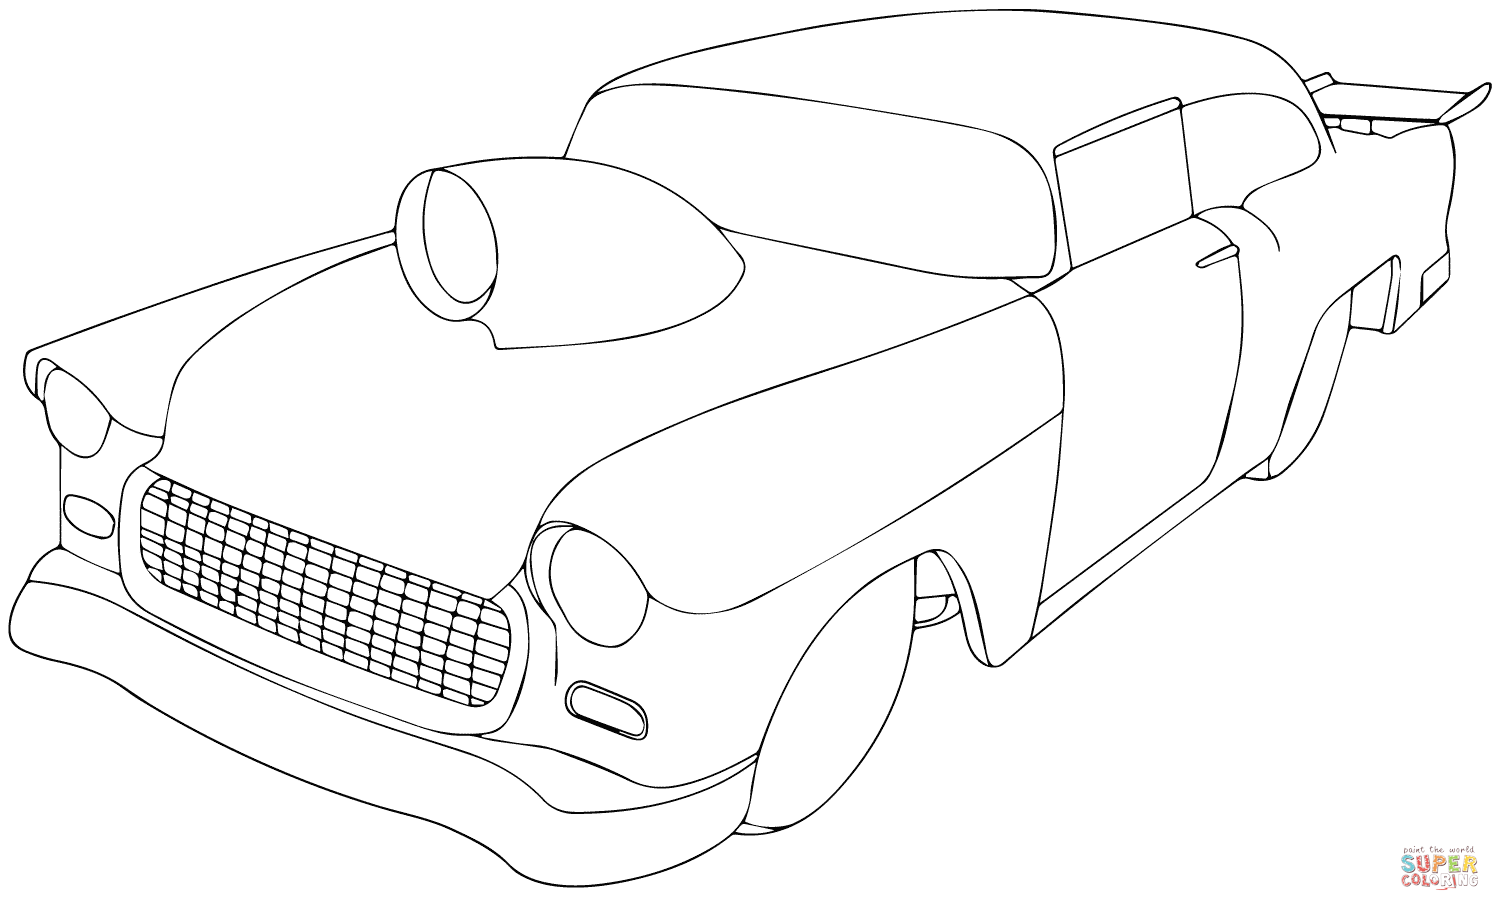 Chevy Pro Sportsman Coloring Page